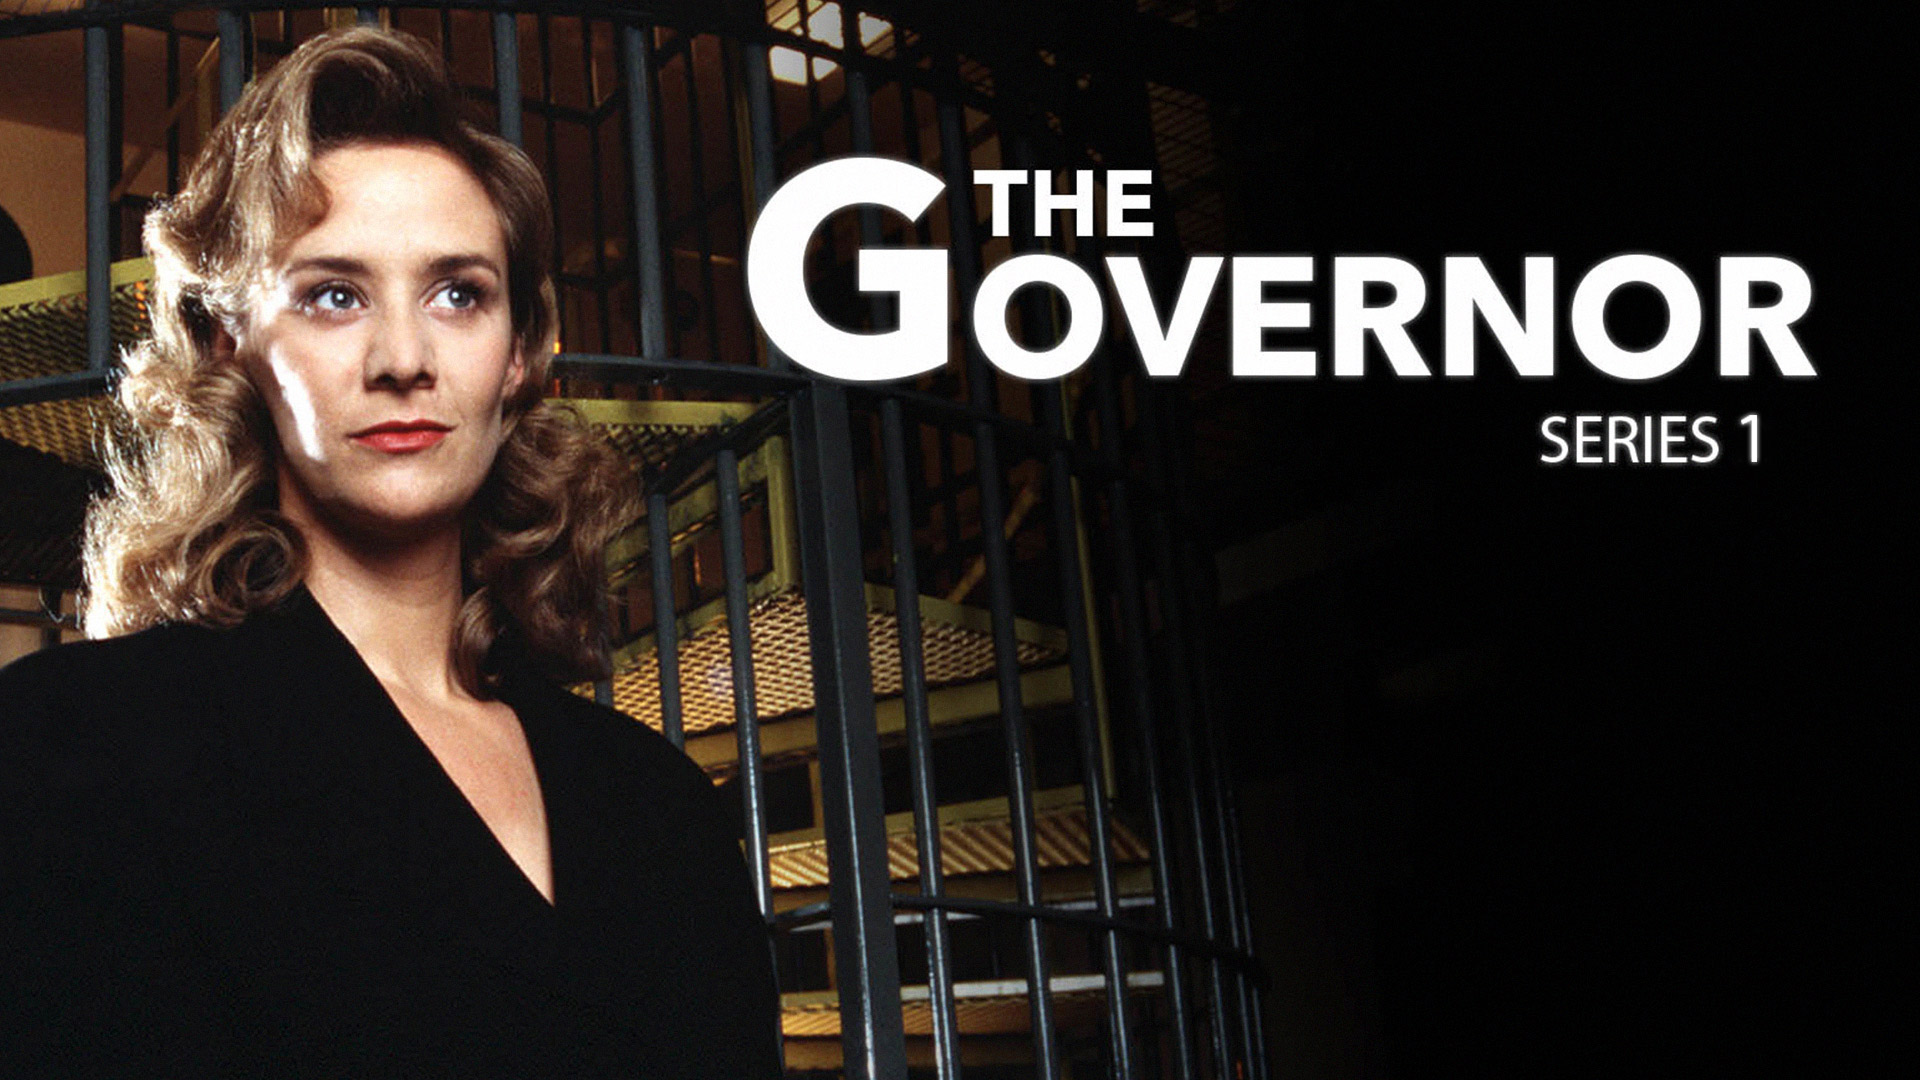 The Governor - Series 1